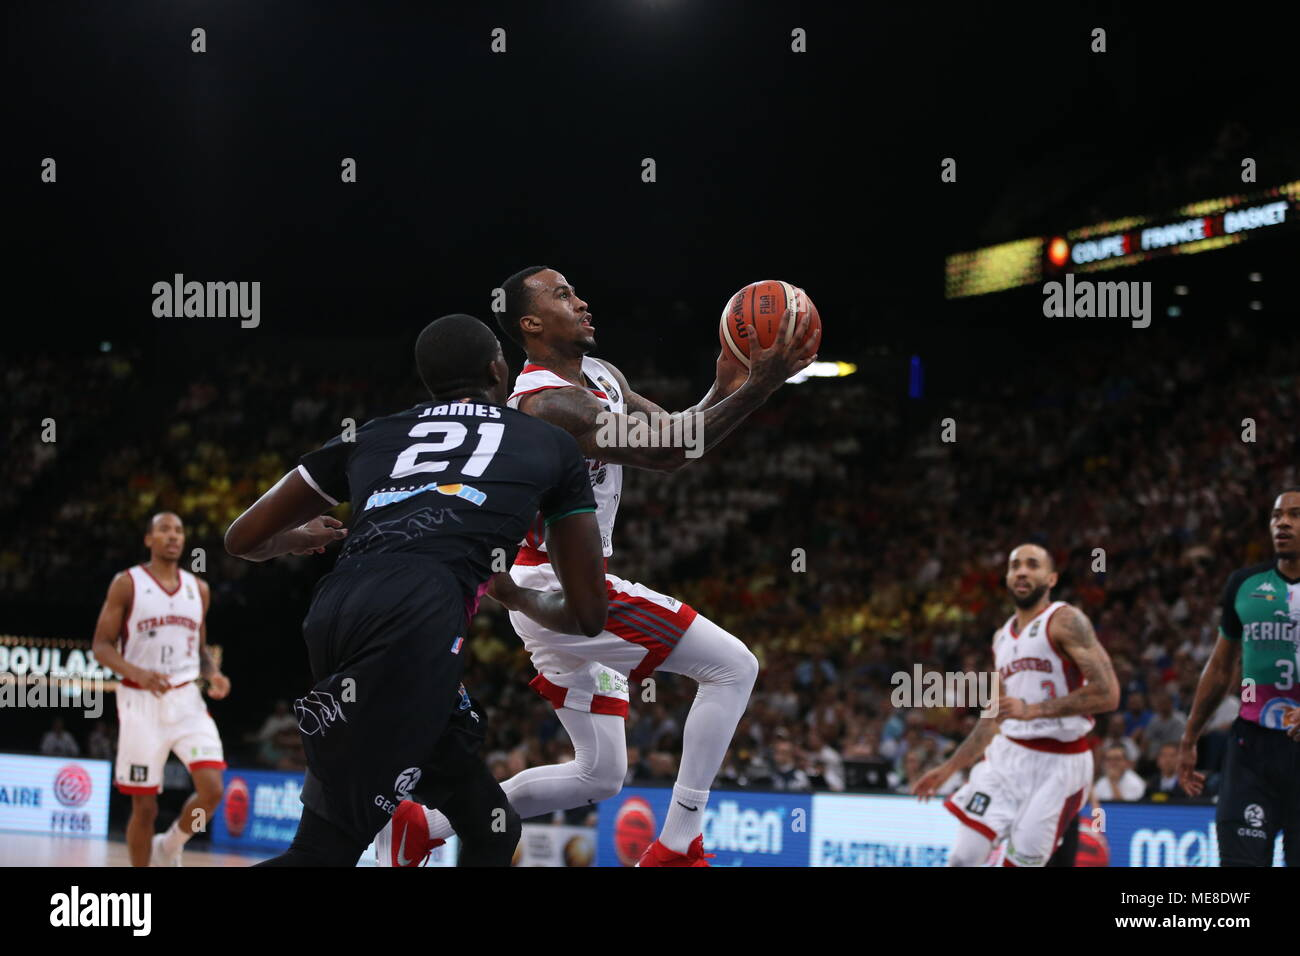 Dee Bost (M) in action during the 'French Cup' match between SIG Strasbourg and Boulazac Basket Dordogne. Final Score (SIG Strasbourg 82 - 62 Boulazac Basket Dordogne) - Stock Image